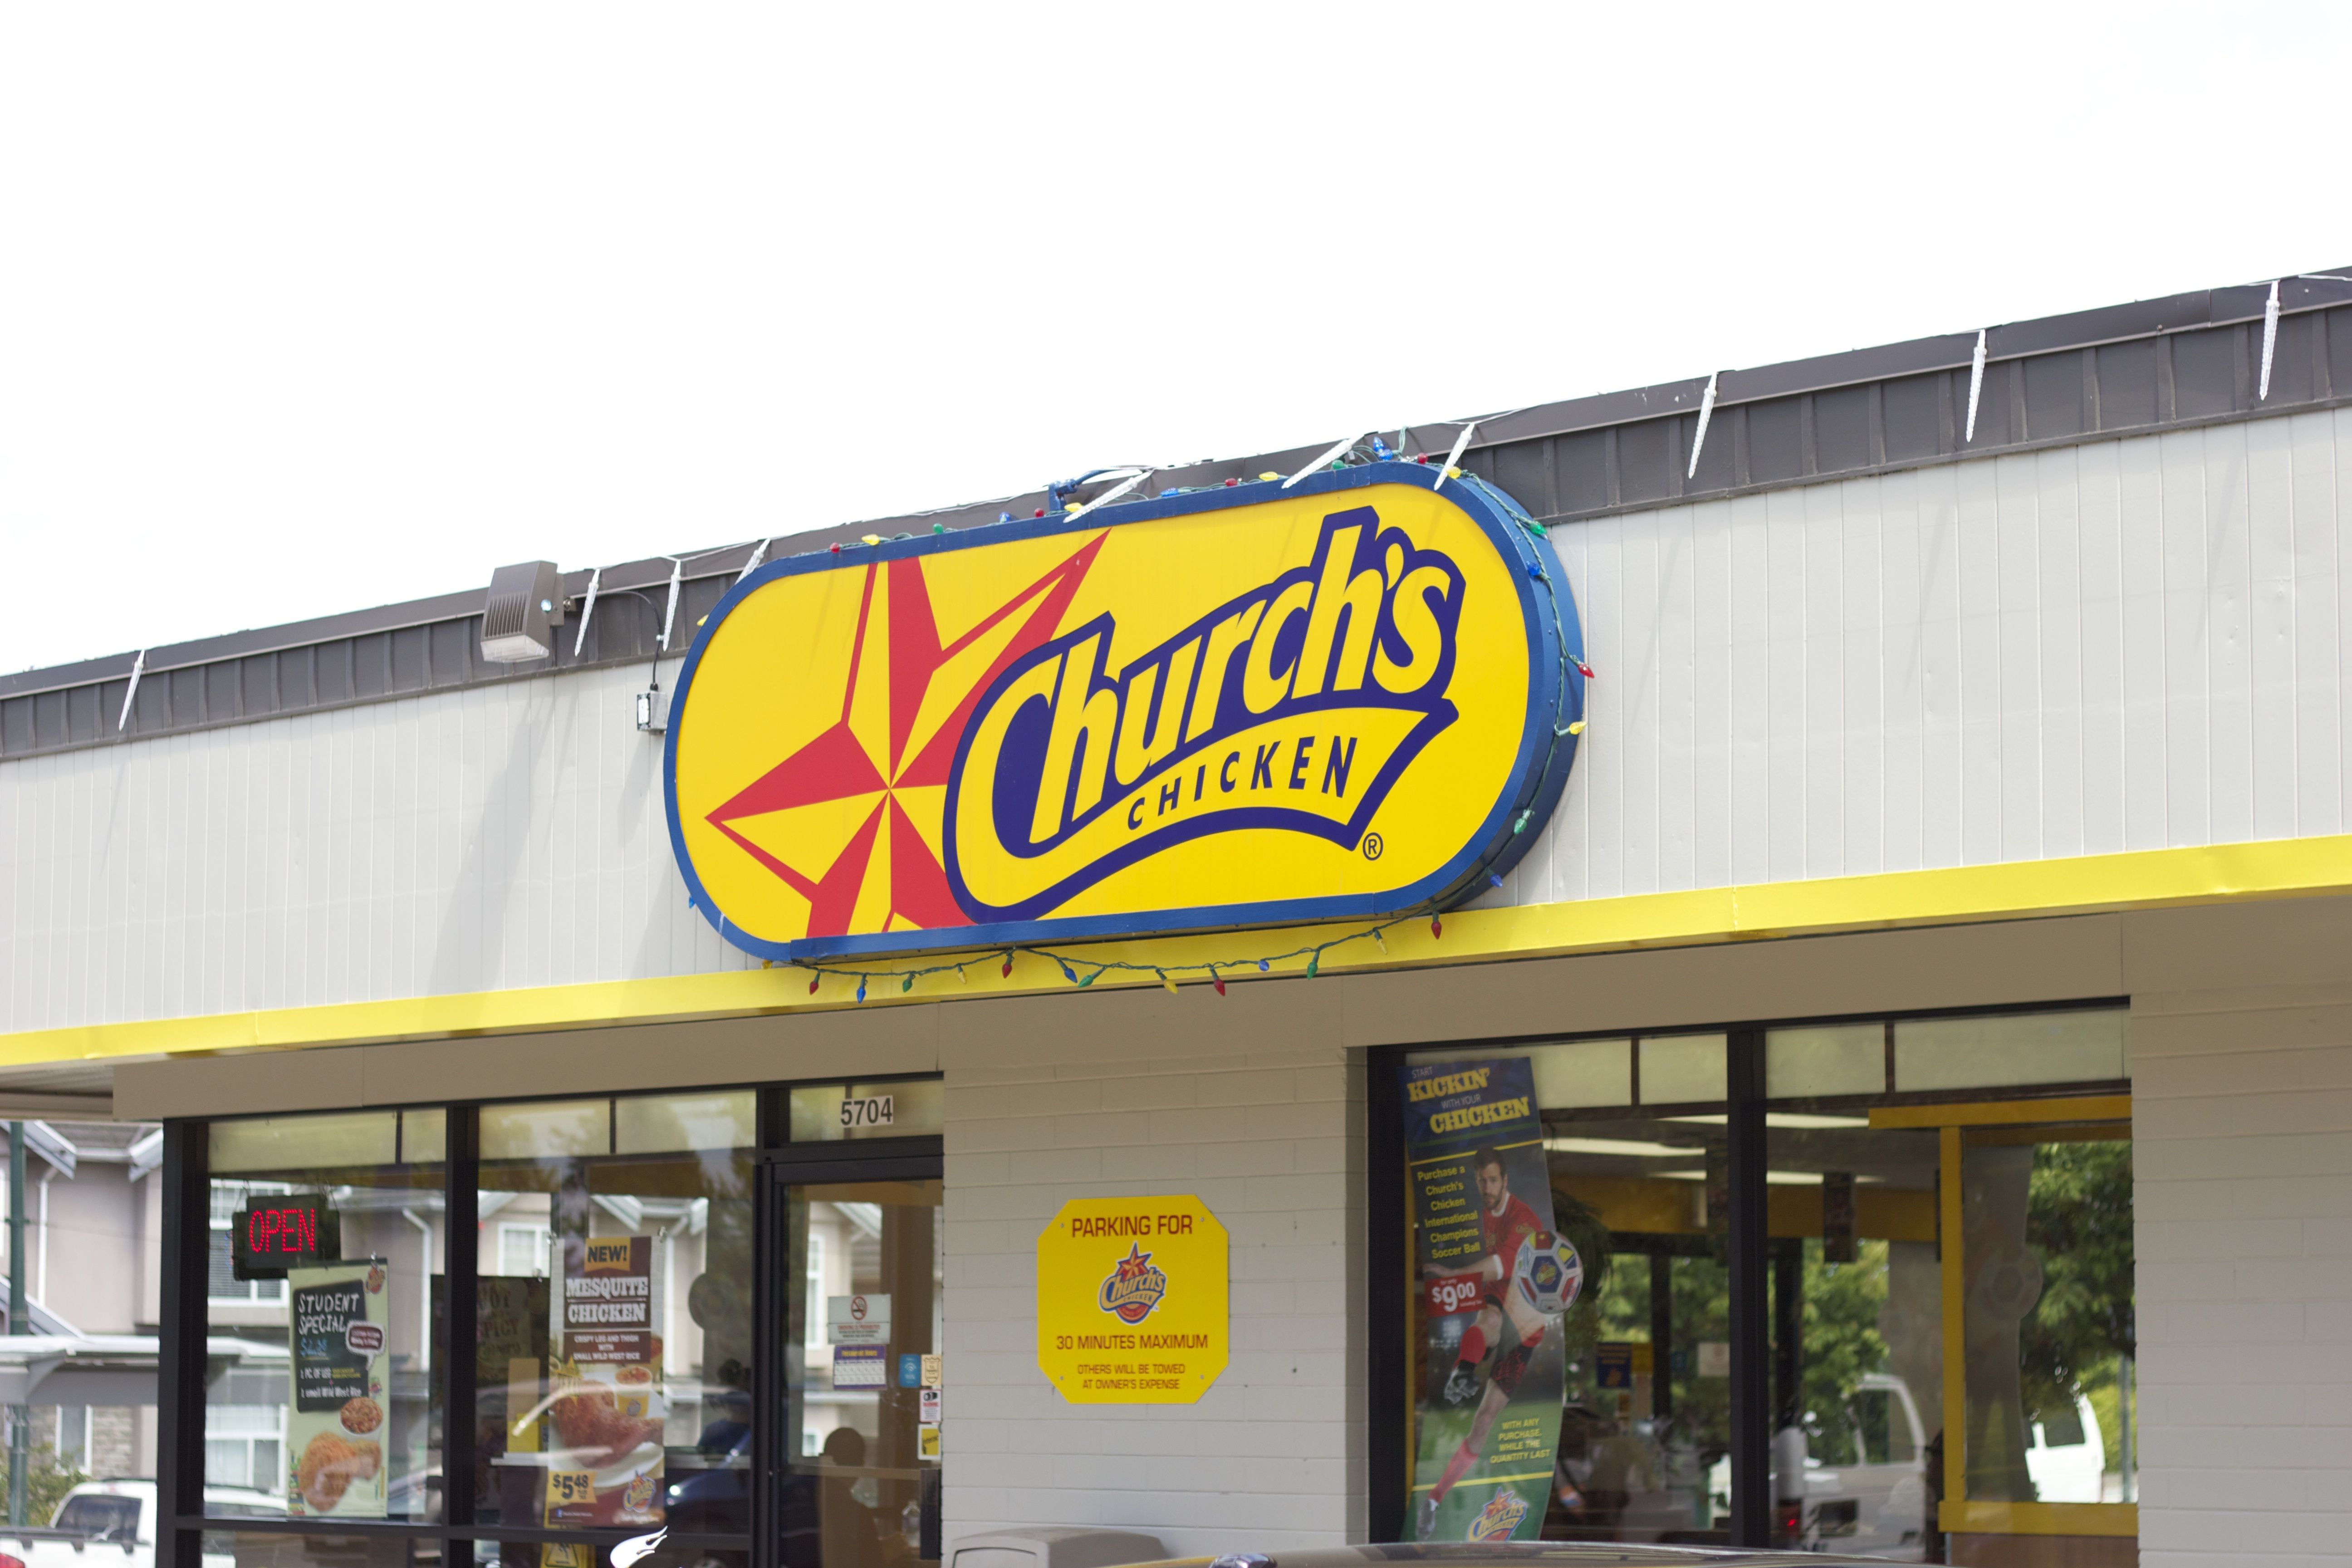 Churchs Chicken On Fraser St Between 41st 50th Ave Vancouver Bc Southhill Vancouver South Hills Fraser Vancouver